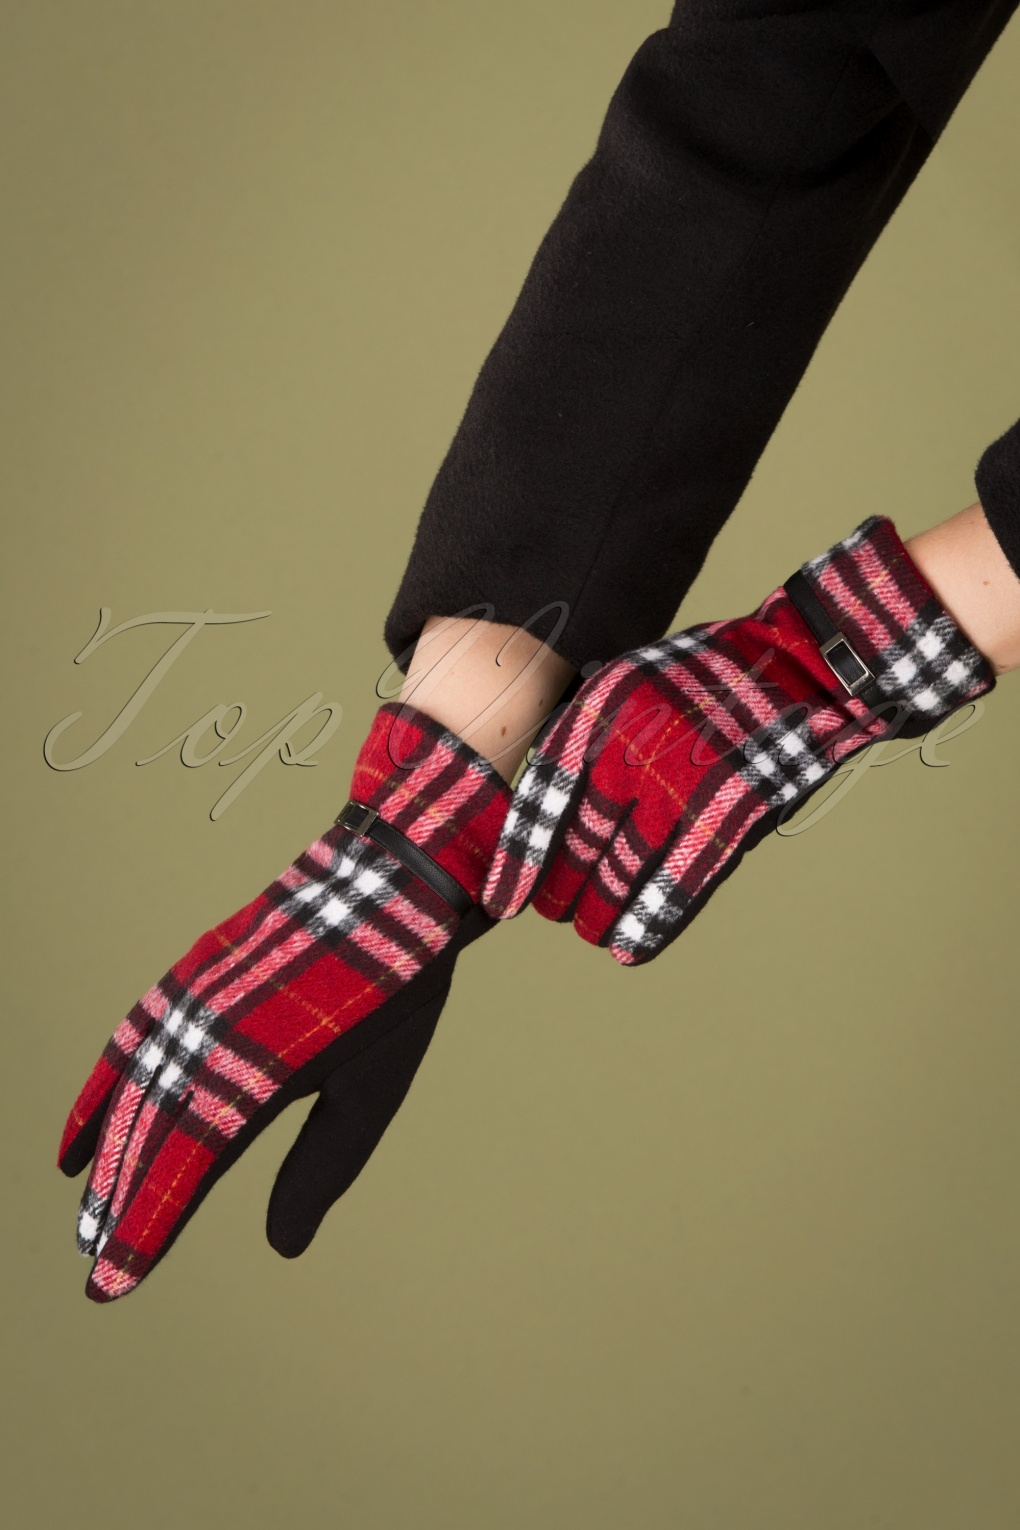 Vintage Style Gloves- Long, Wrist, Evening, Day, Leather, Lace 50s Tartan Gloves in Red and Black £14.83 AT vintagedancer.com